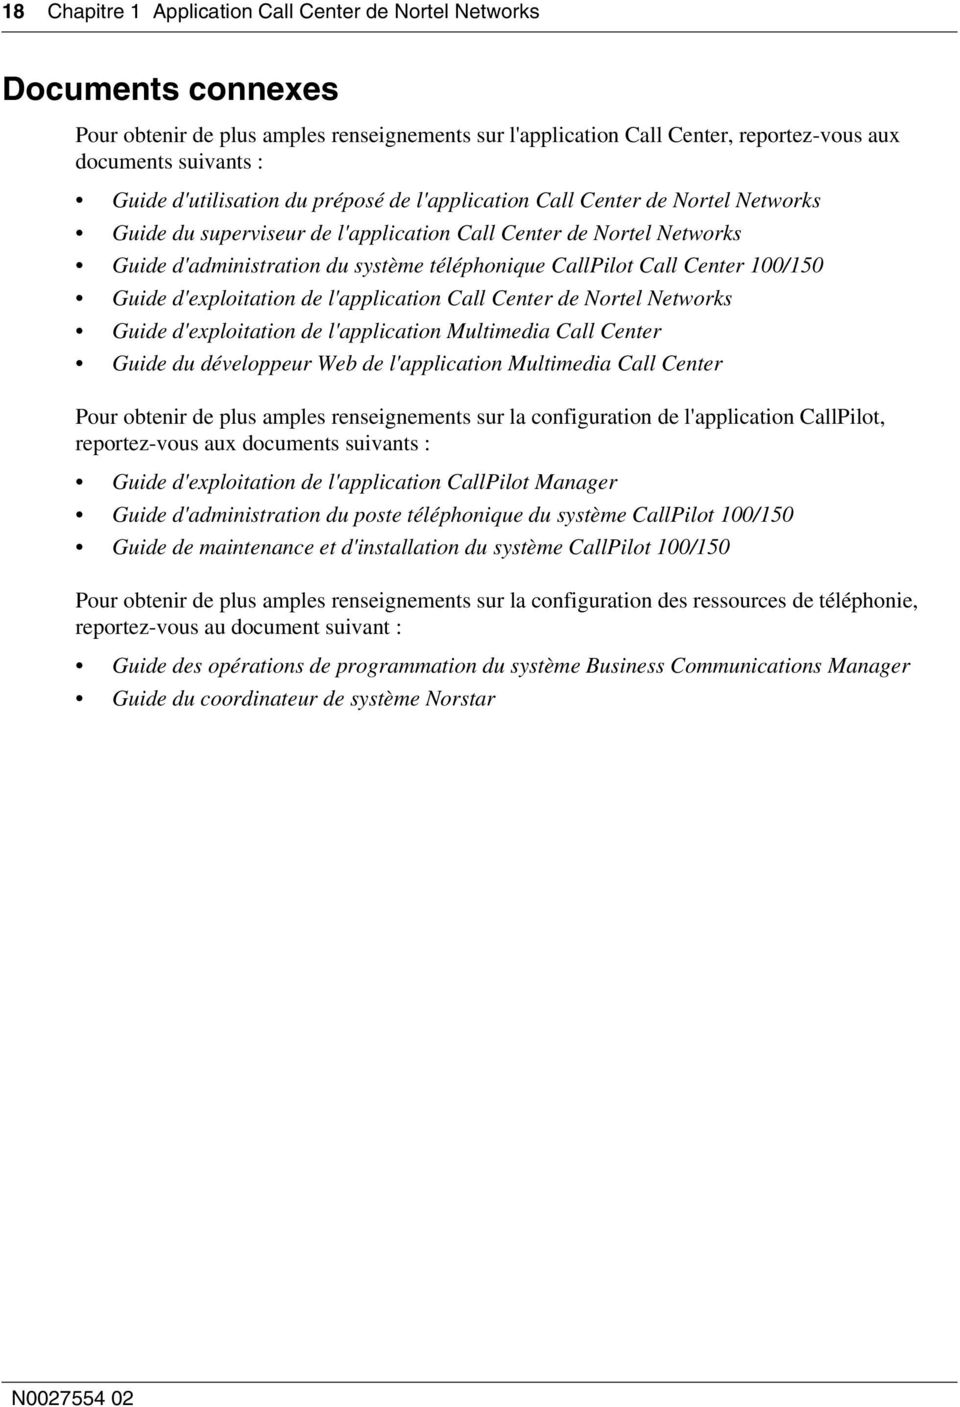 Call Center 100/150 Guide d'exploitation de l'application Call Center de Nortel Networks Guide d'exploitation de l'application Multimedia Call Center Guide du développeur Web de l'application